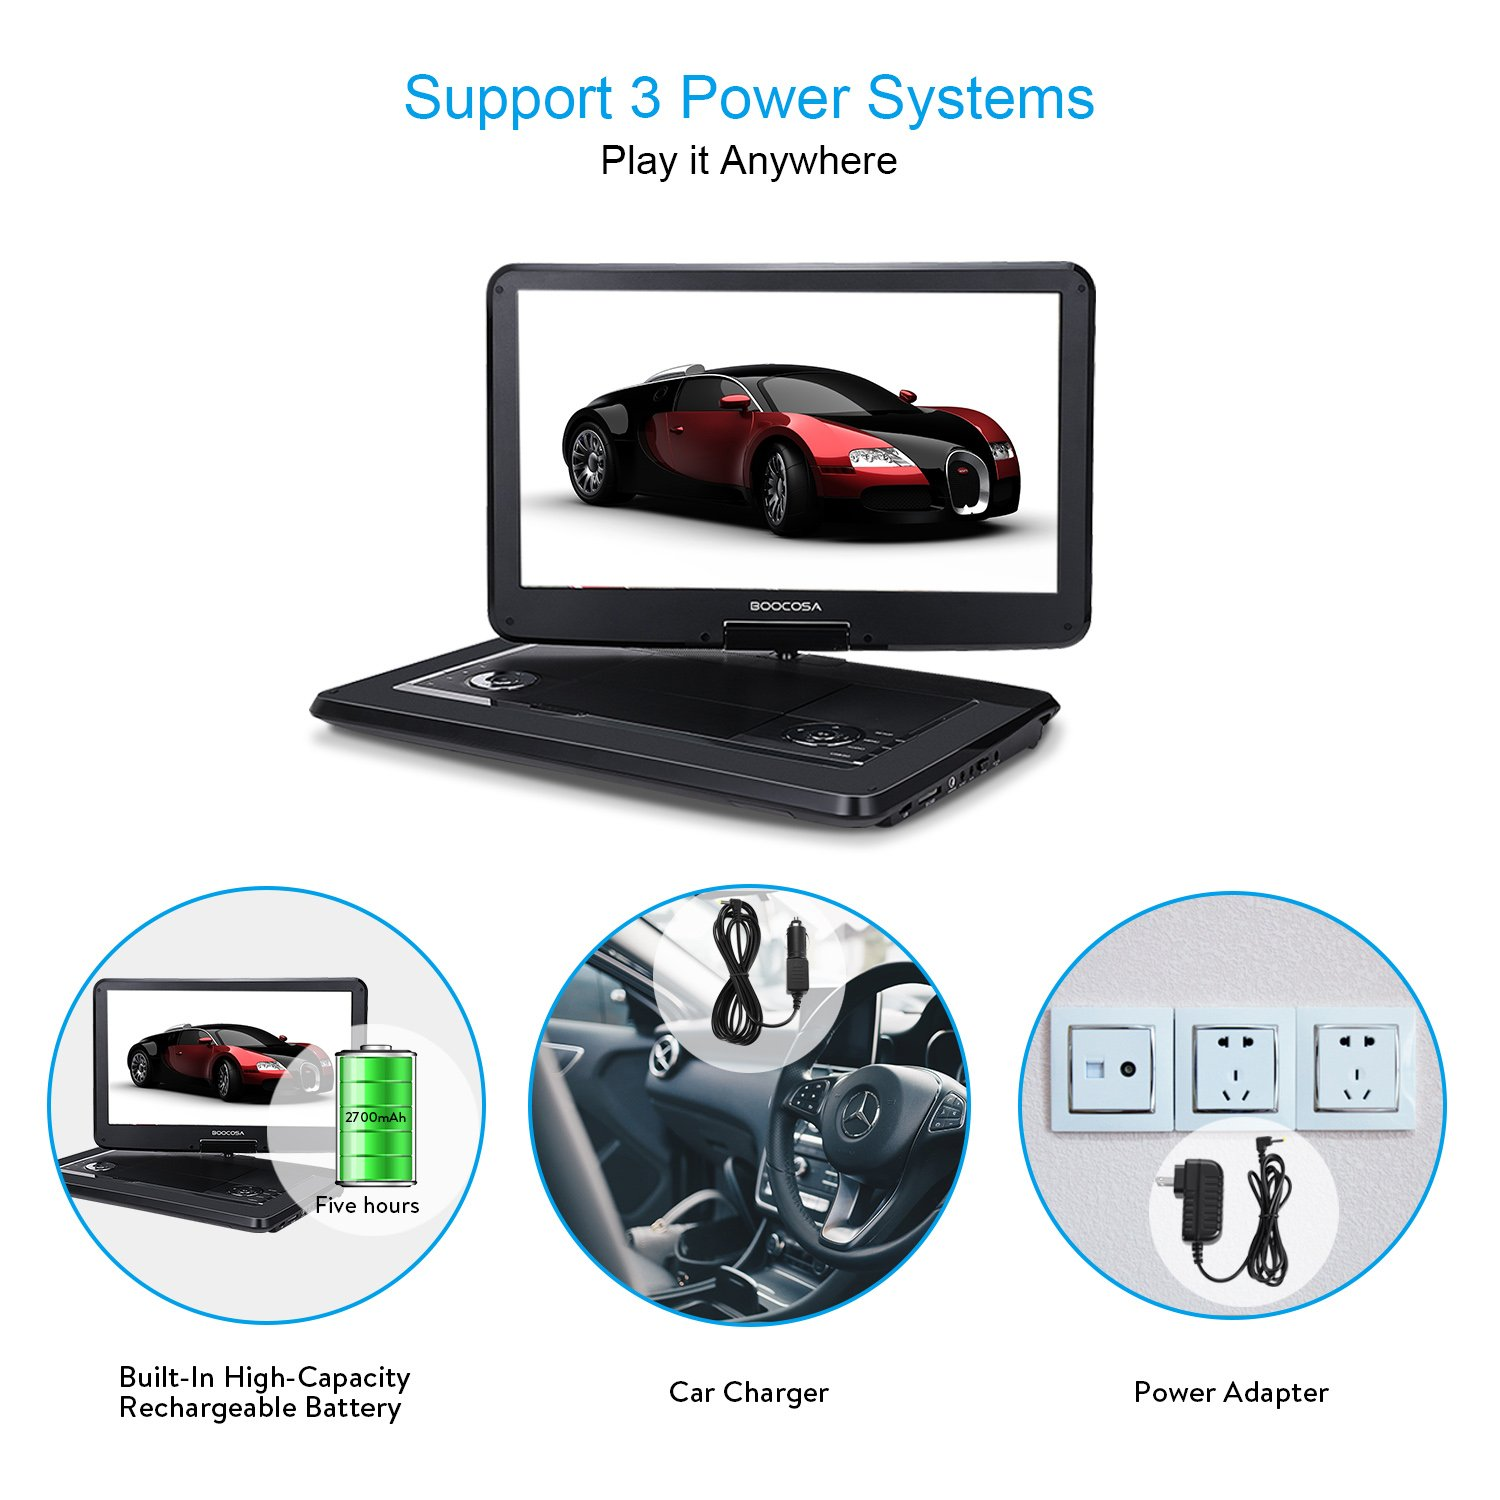 BOOCOSA Portable DVD Player with 270° Swivel TFT LCD Screen, Remote Control, Built-in 5 Hours Rechargeable Battery, Car Charger, AV Cable, Carrying Bag, CD/MMC Card Slot/USB (15.6 Inches, Black) by BOOCOSA (Image #4)